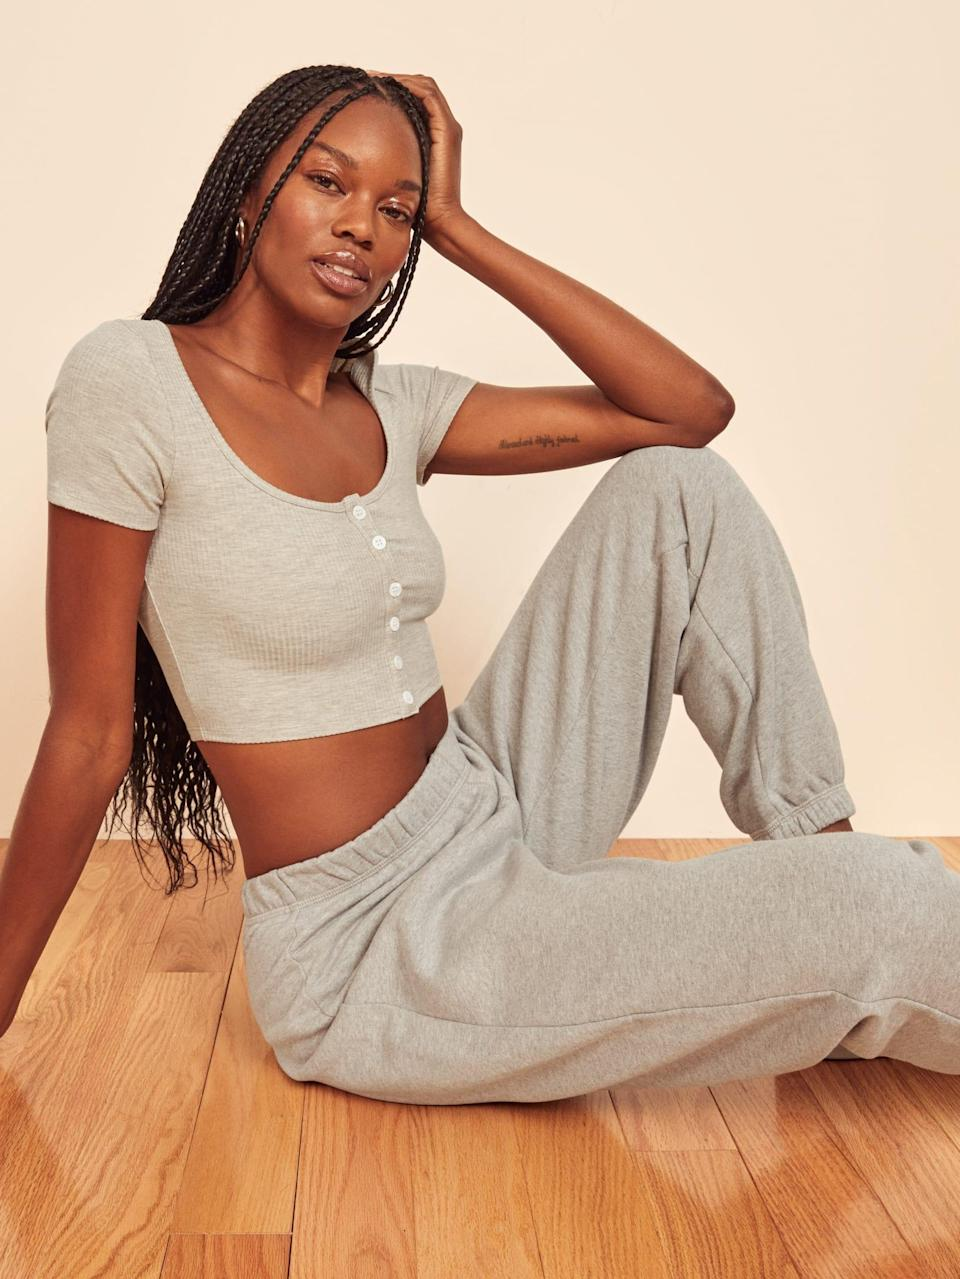 """<h2>Lady-Like Loungewear </h2><br><br><strong>Reformation</strong> Cili Top, $, available at <a href=""""https://go.skimresources.com/?id=30283X879131&url=https%3A%2F%2Fwww.thereformation.com%2Fproducts%2Fcili-top%3Fcolor%3DMarble"""" rel=""""nofollow noopener"""" target=""""_blank"""" data-ylk=""""slk:Reformation"""" class=""""link rapid-noclick-resp"""">Reformation</a>"""